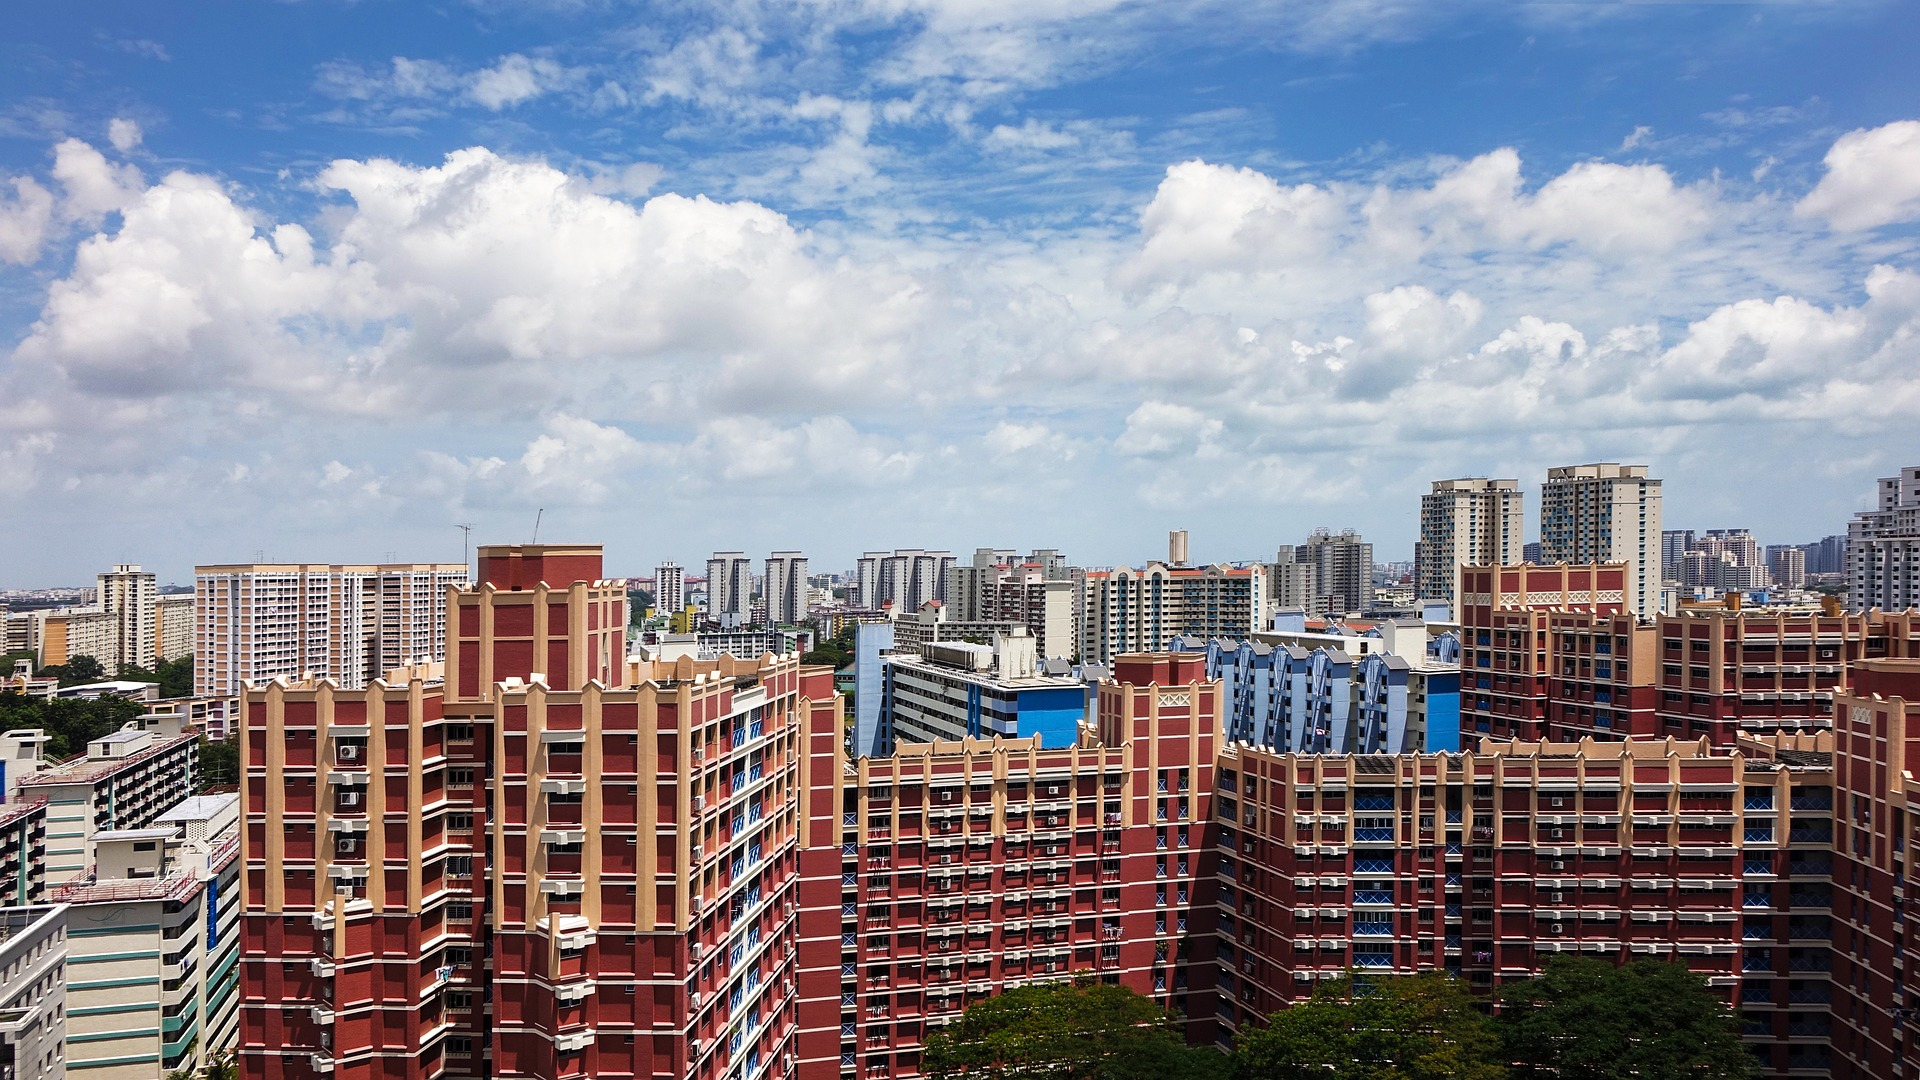 Bird's eye view of Toa Payoh